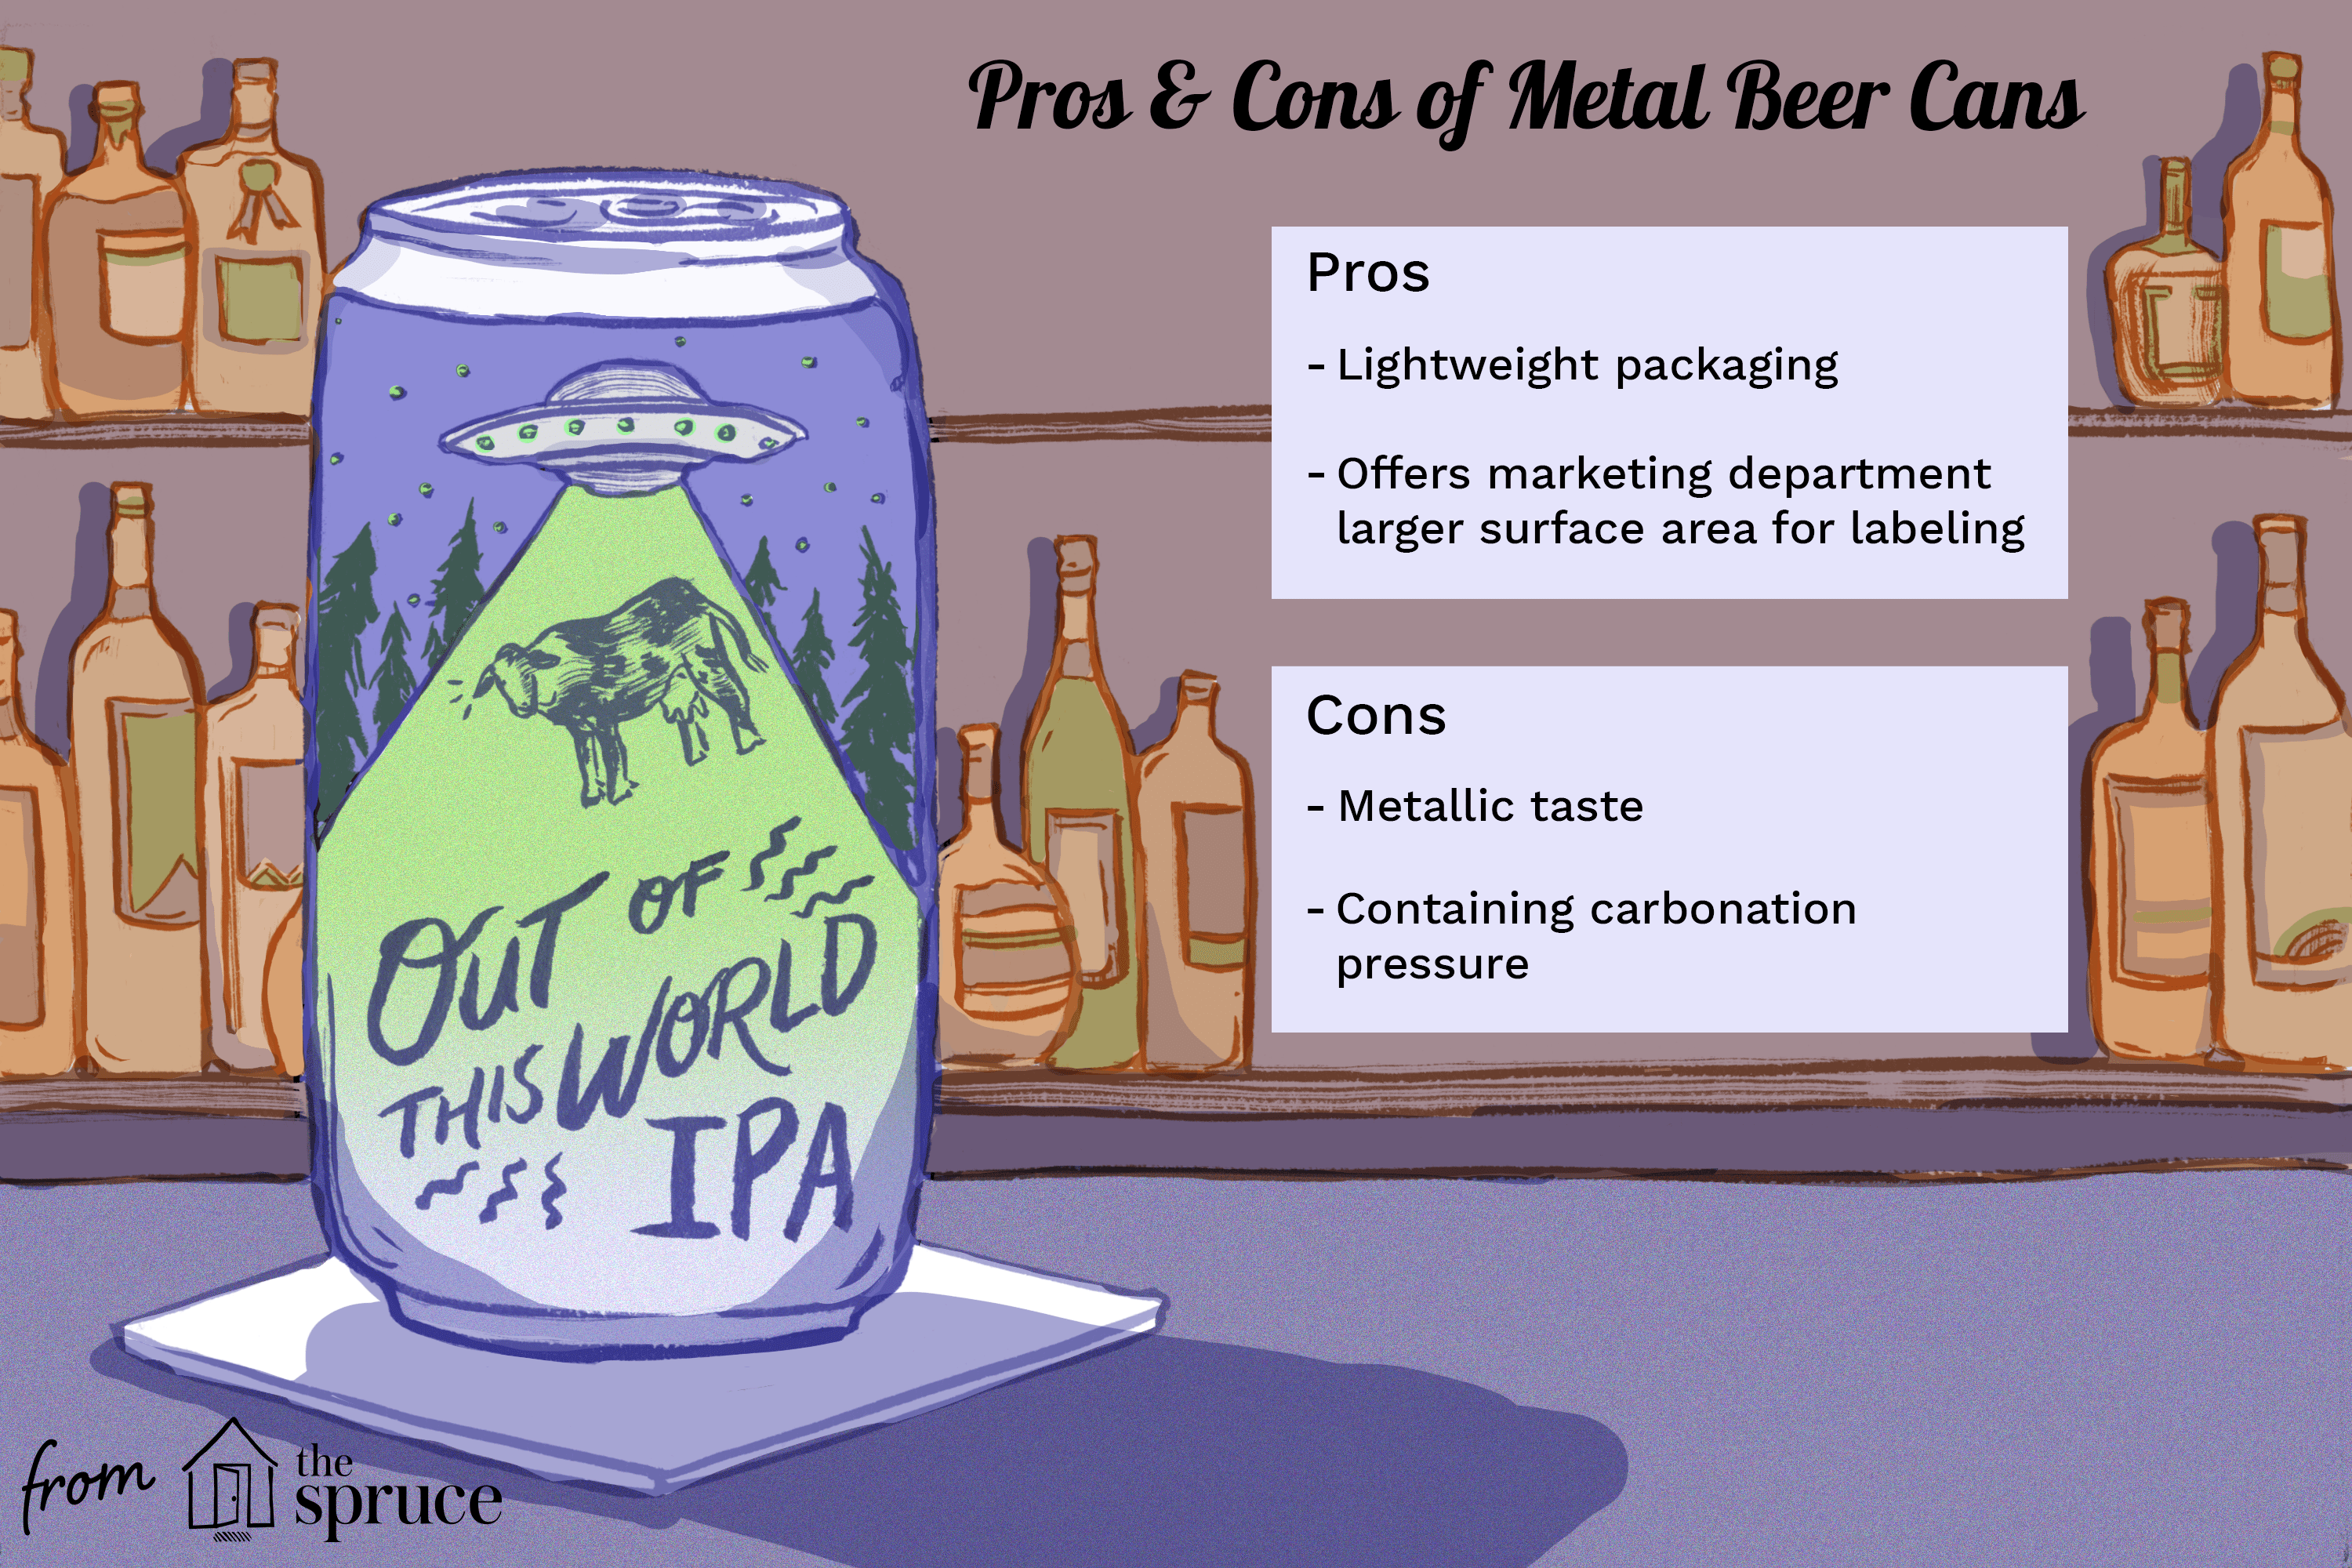 pros and cons of metal beer cans